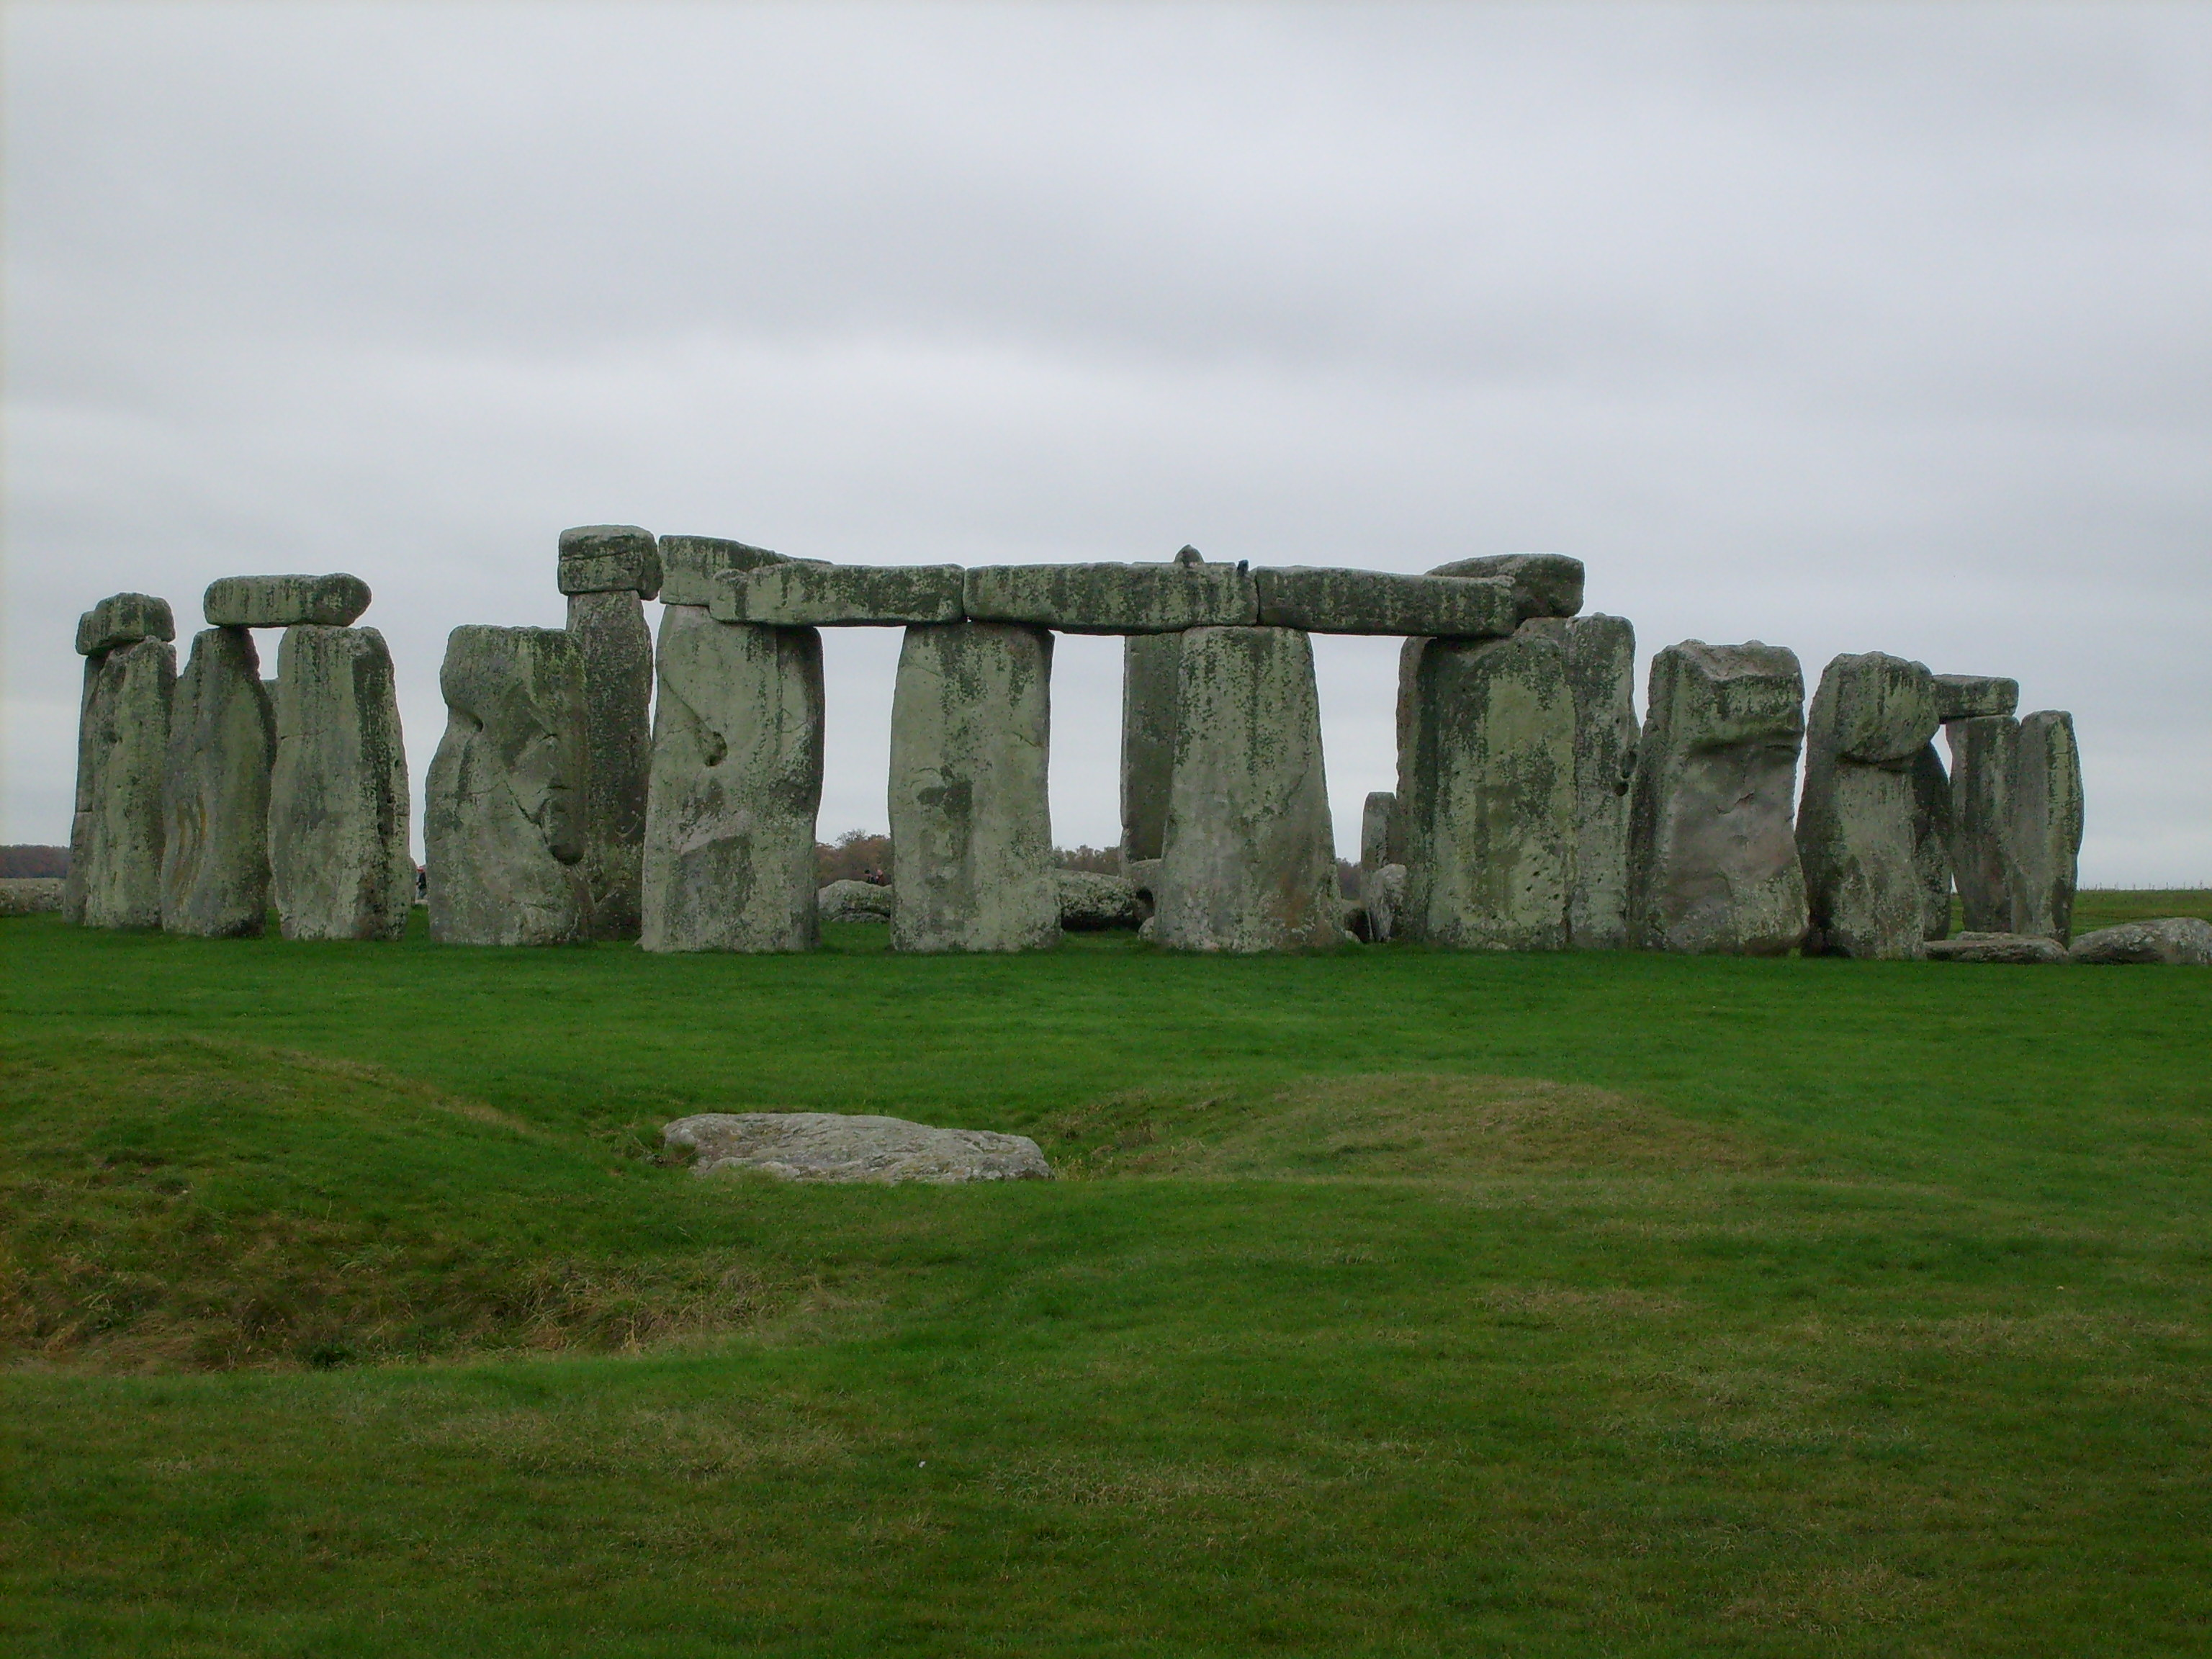 stonehedge purpose Theories & myths about the purpose & meaning of stonehenge: ancient sun calendar why was stonehenge built what is the meaning of stonehenge one of the most famous theories about stonehenge is that it was actually a big, ancient calendar designed to keep track of time and important astronomical events.